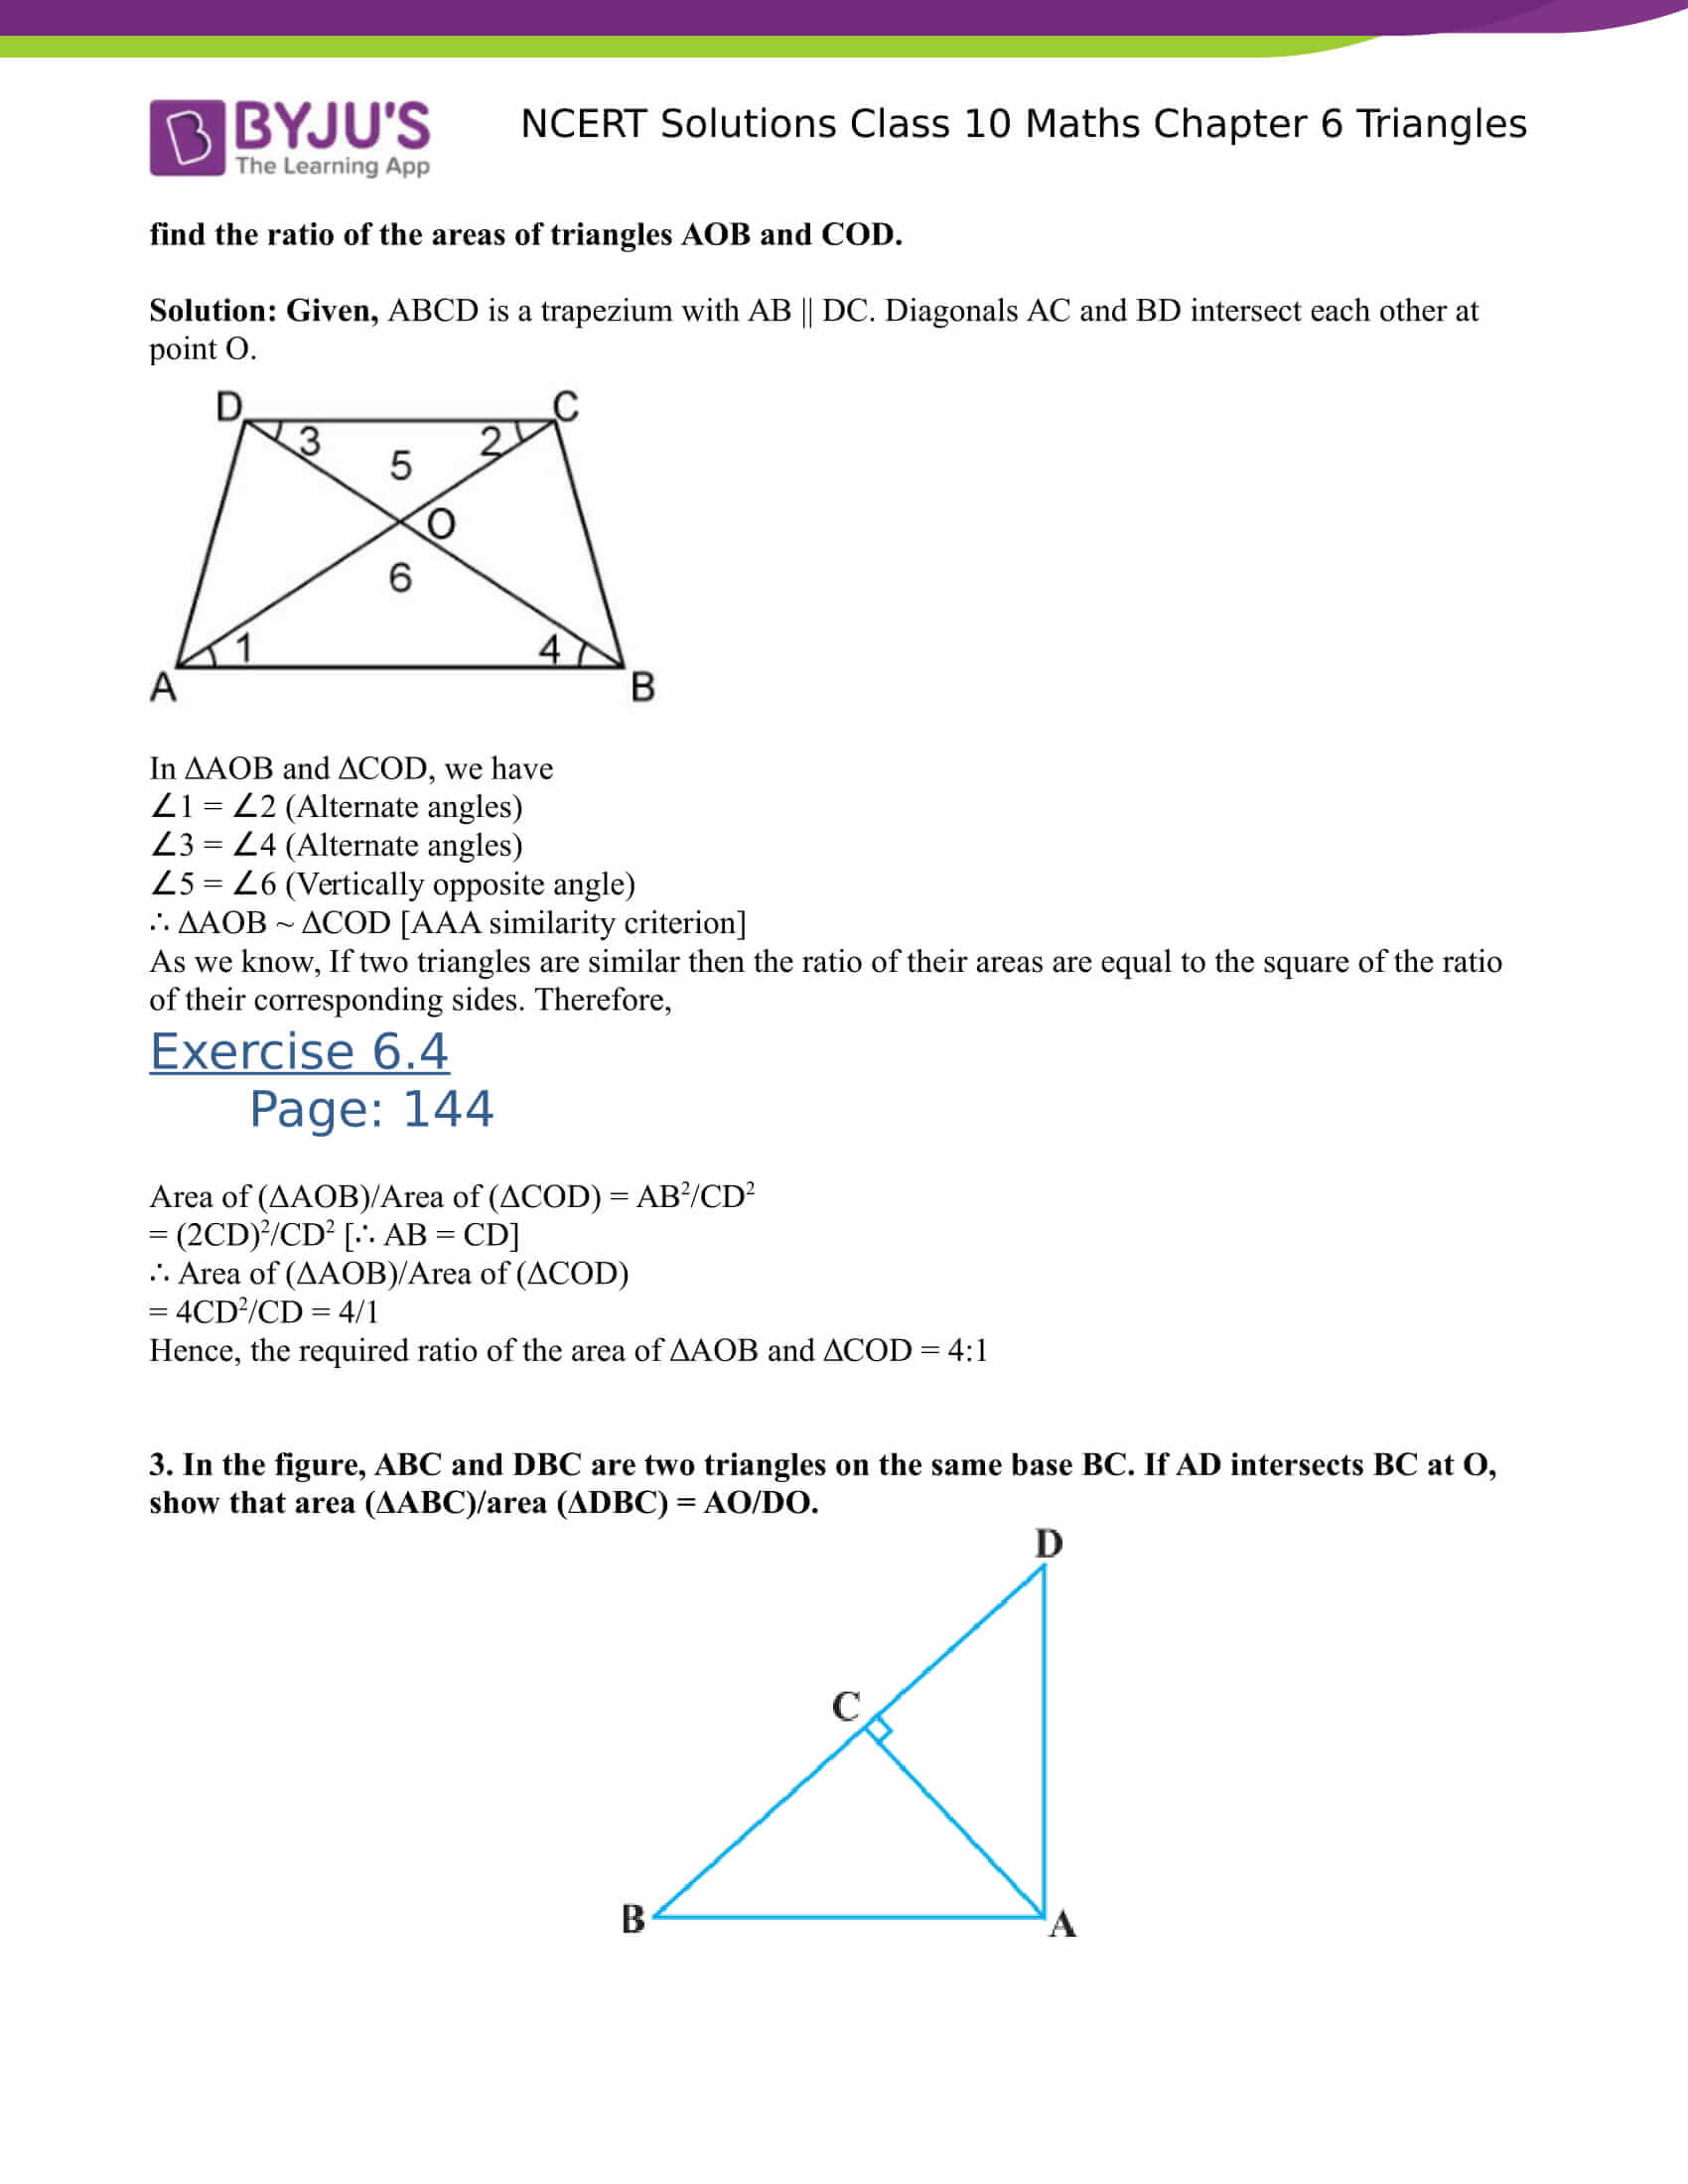 NCERT Solutions for class 10 Maths Chapter 6 Triangles Part 27